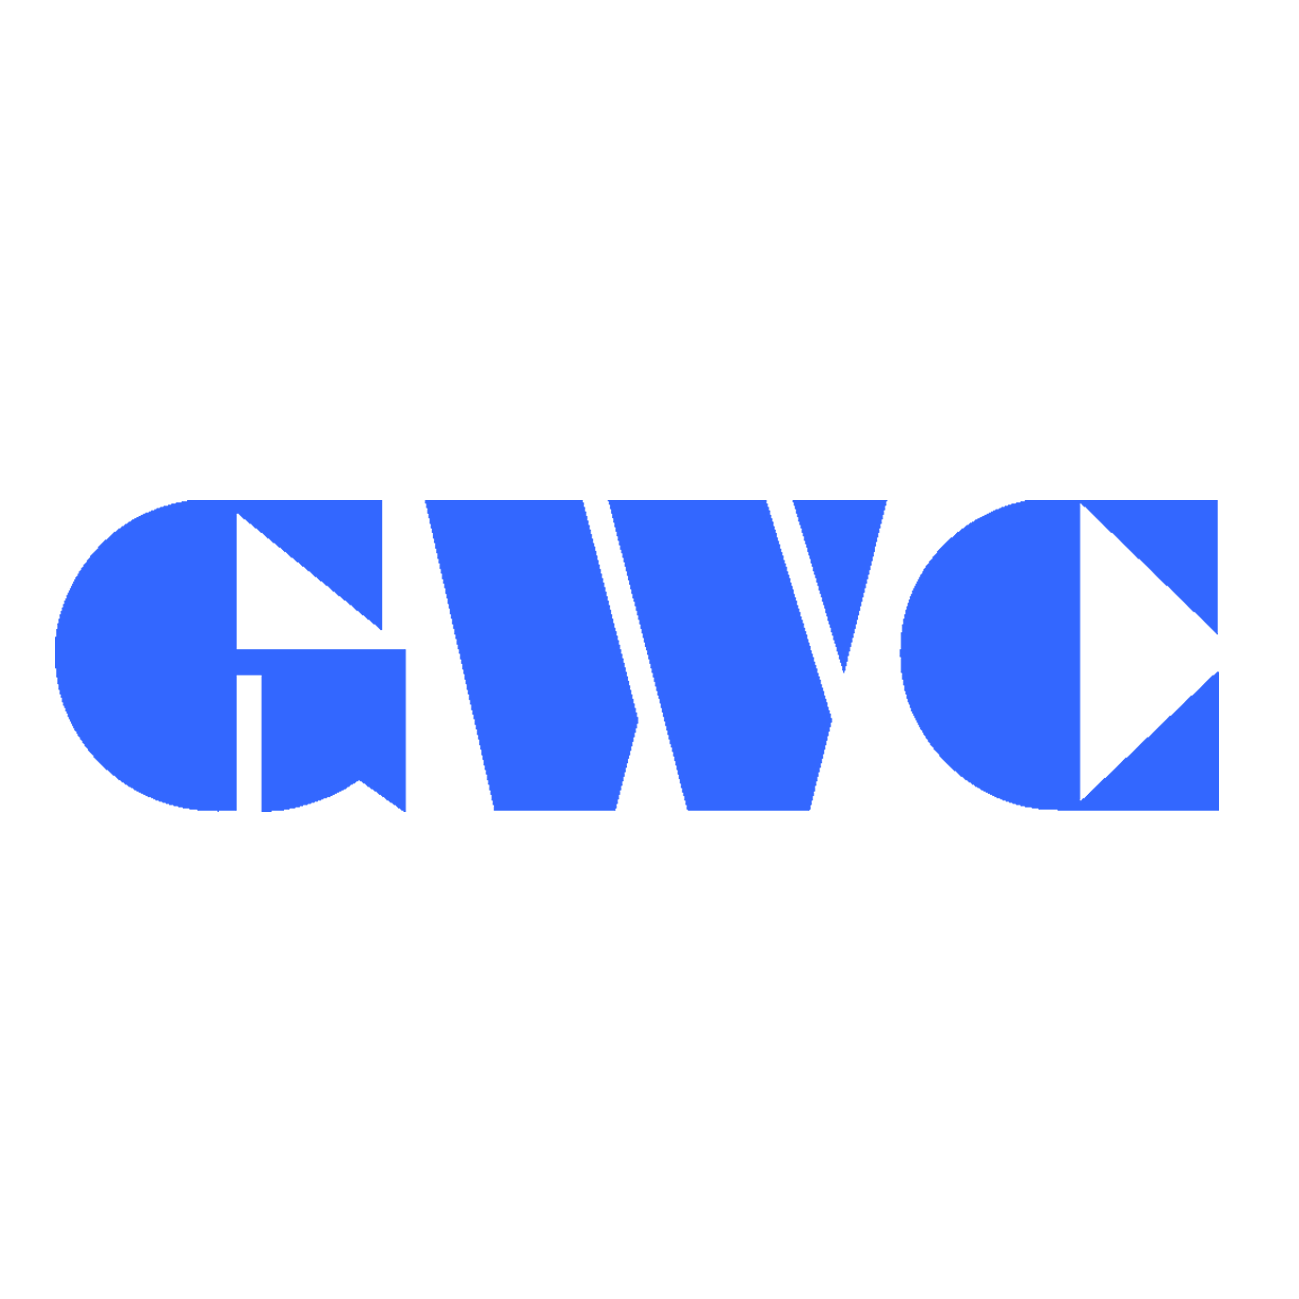 GWC Water Consultant GmbH